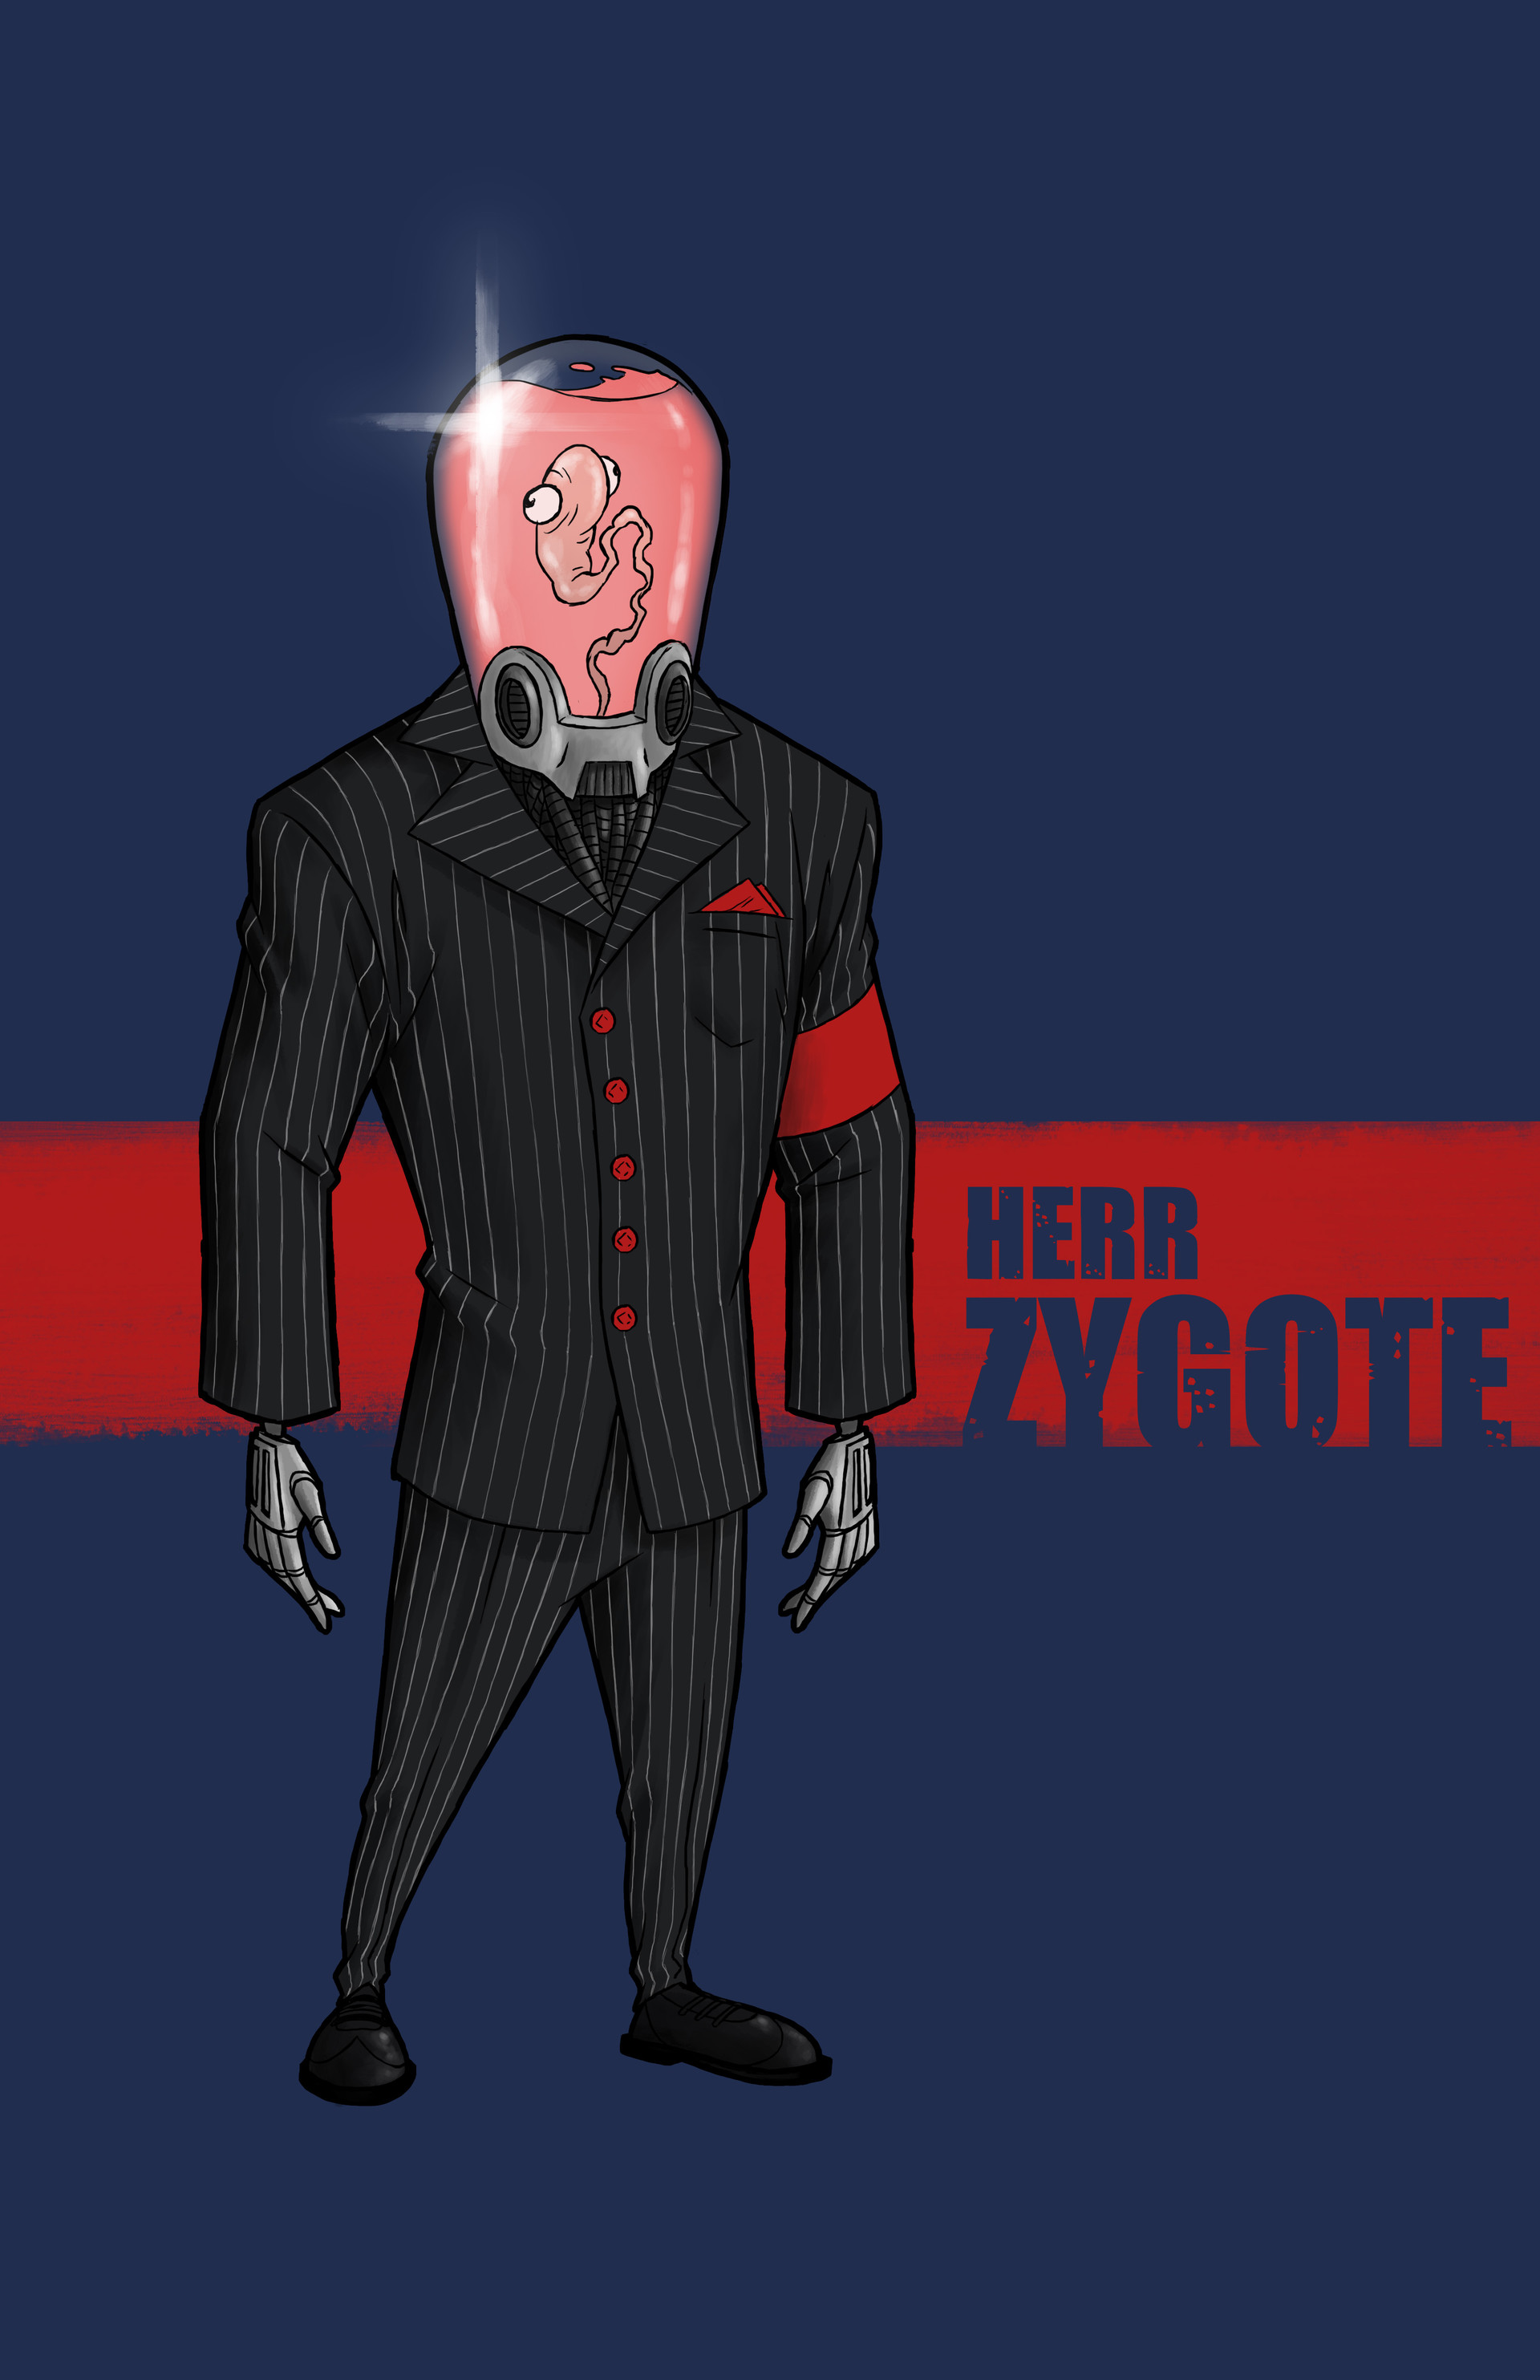 An abortion, literally. Heir Zygote is an undeveloped humanoid encased in a highly advanced prosthetic frame. He is the CEO of Embryon Cybernetic Industries and commands great wealth and power in world of the future.